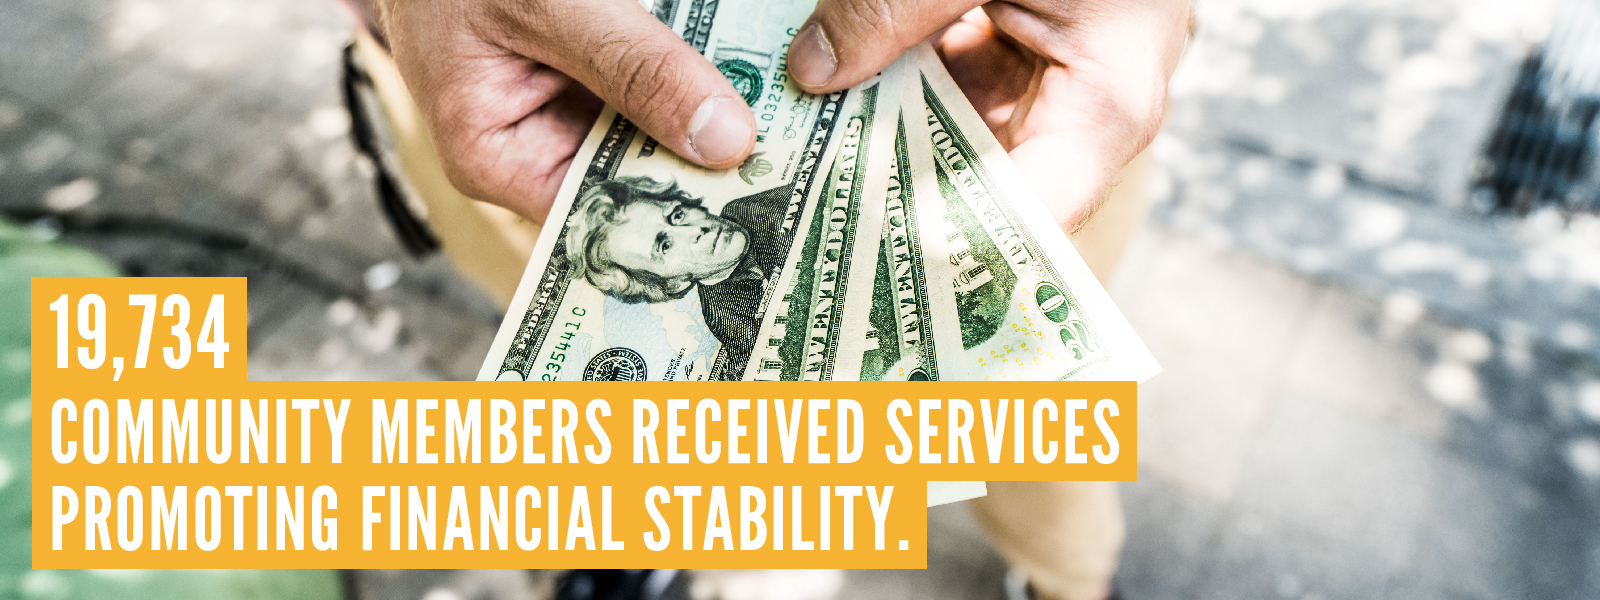 19,734 community members received services promoting financial stability